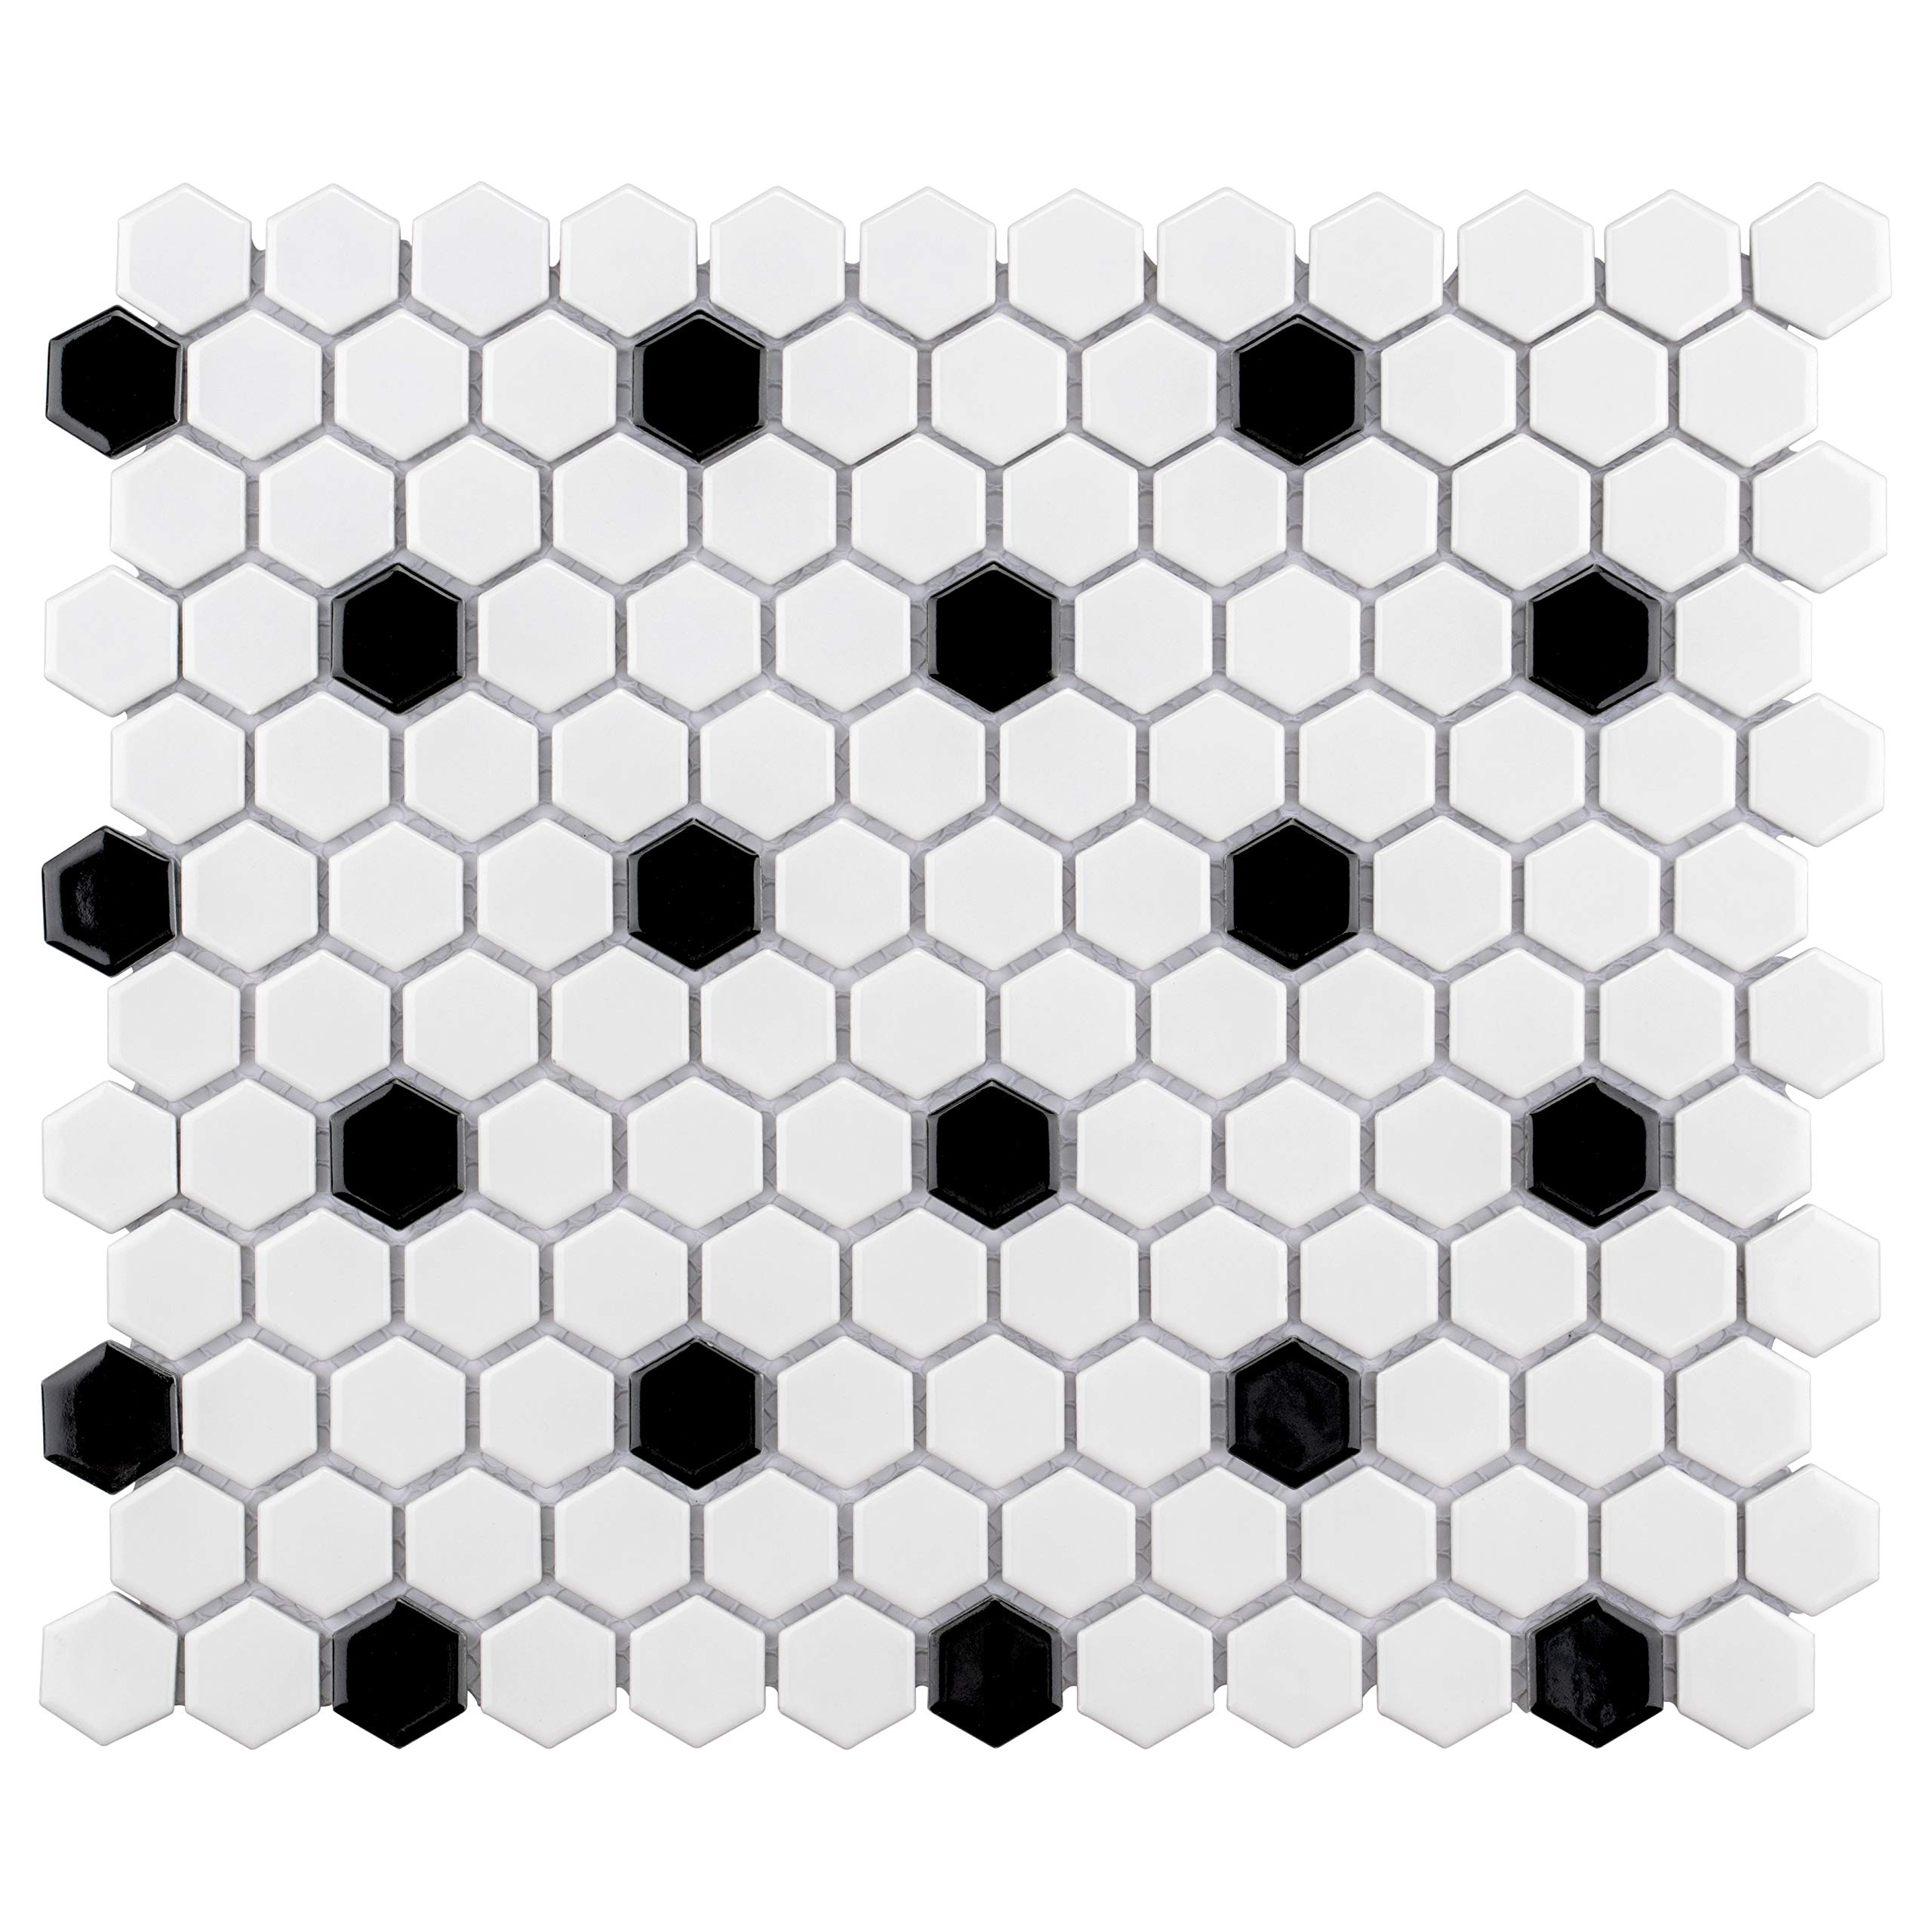 SomerTile FXLMHWBD Retro Hexagon Porcelain Mosaic Floor and Wall Tile, 10.25'' x 11.75'', White with Black Dot by SOMERTILE (Image #1)